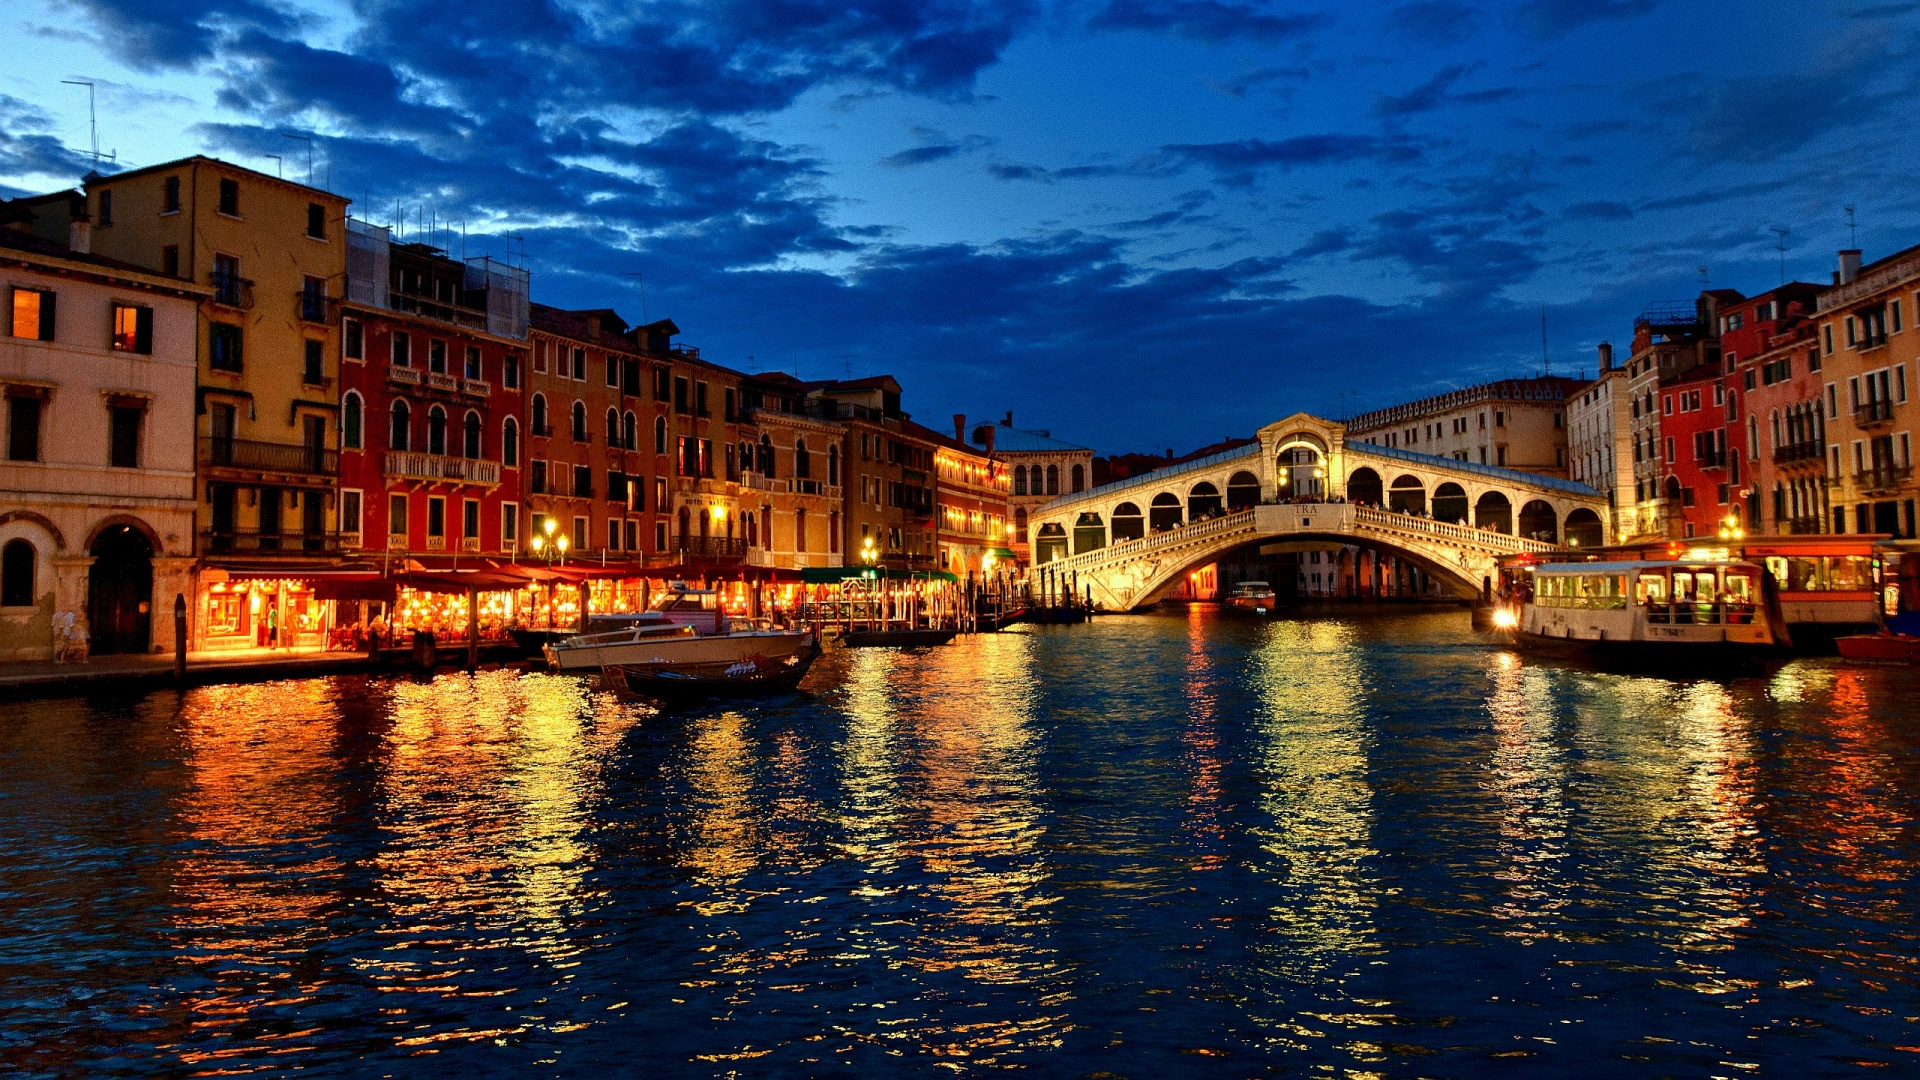 Romantic Venice Night Wallpaper